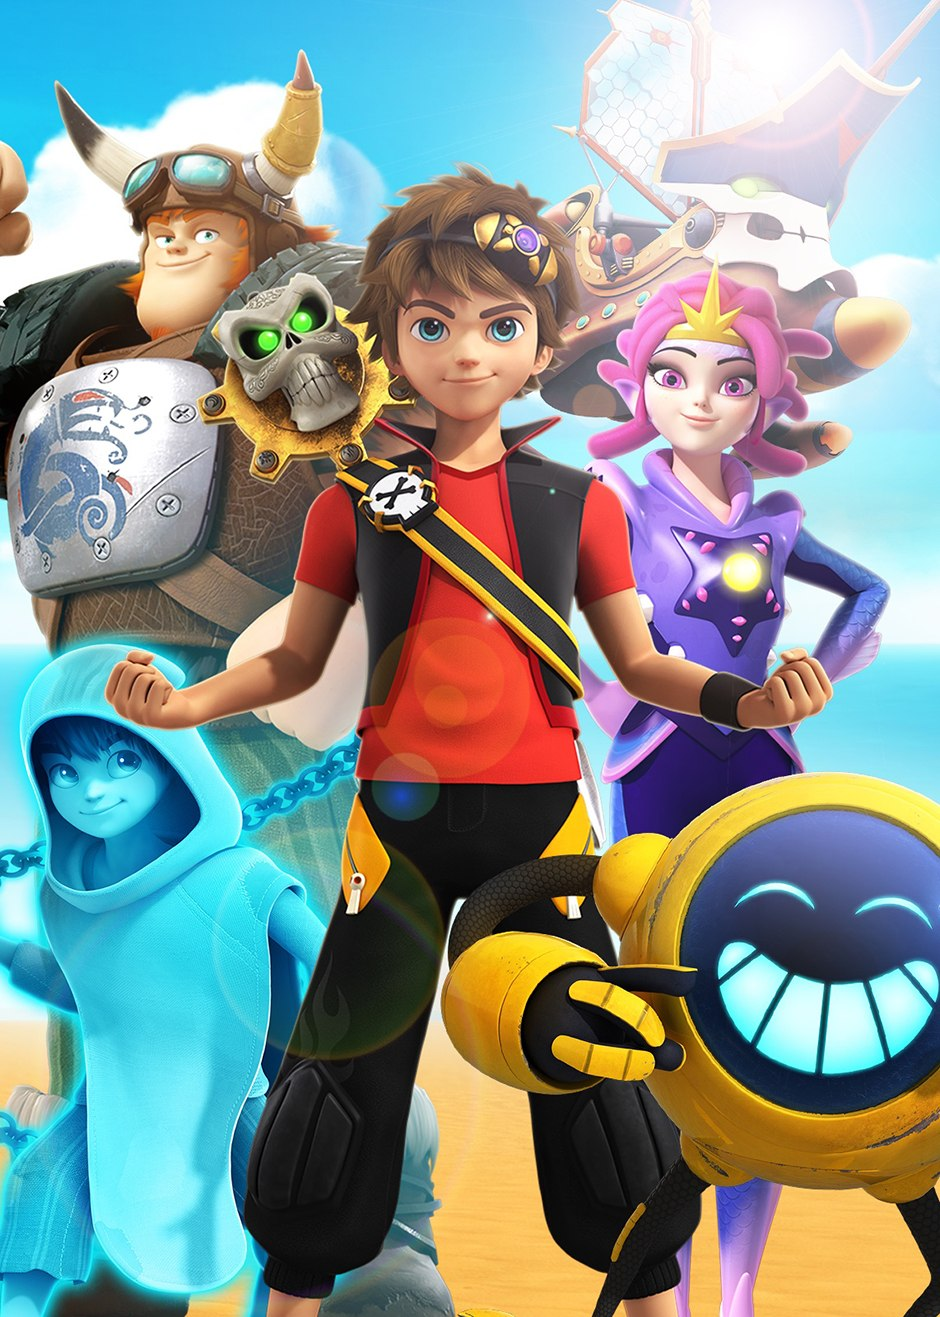 Zak Storm, Super Pirate : storm,, super, pirate, Bandai, Storm', Show,, Toys,, Mobile, Animation, World, Network